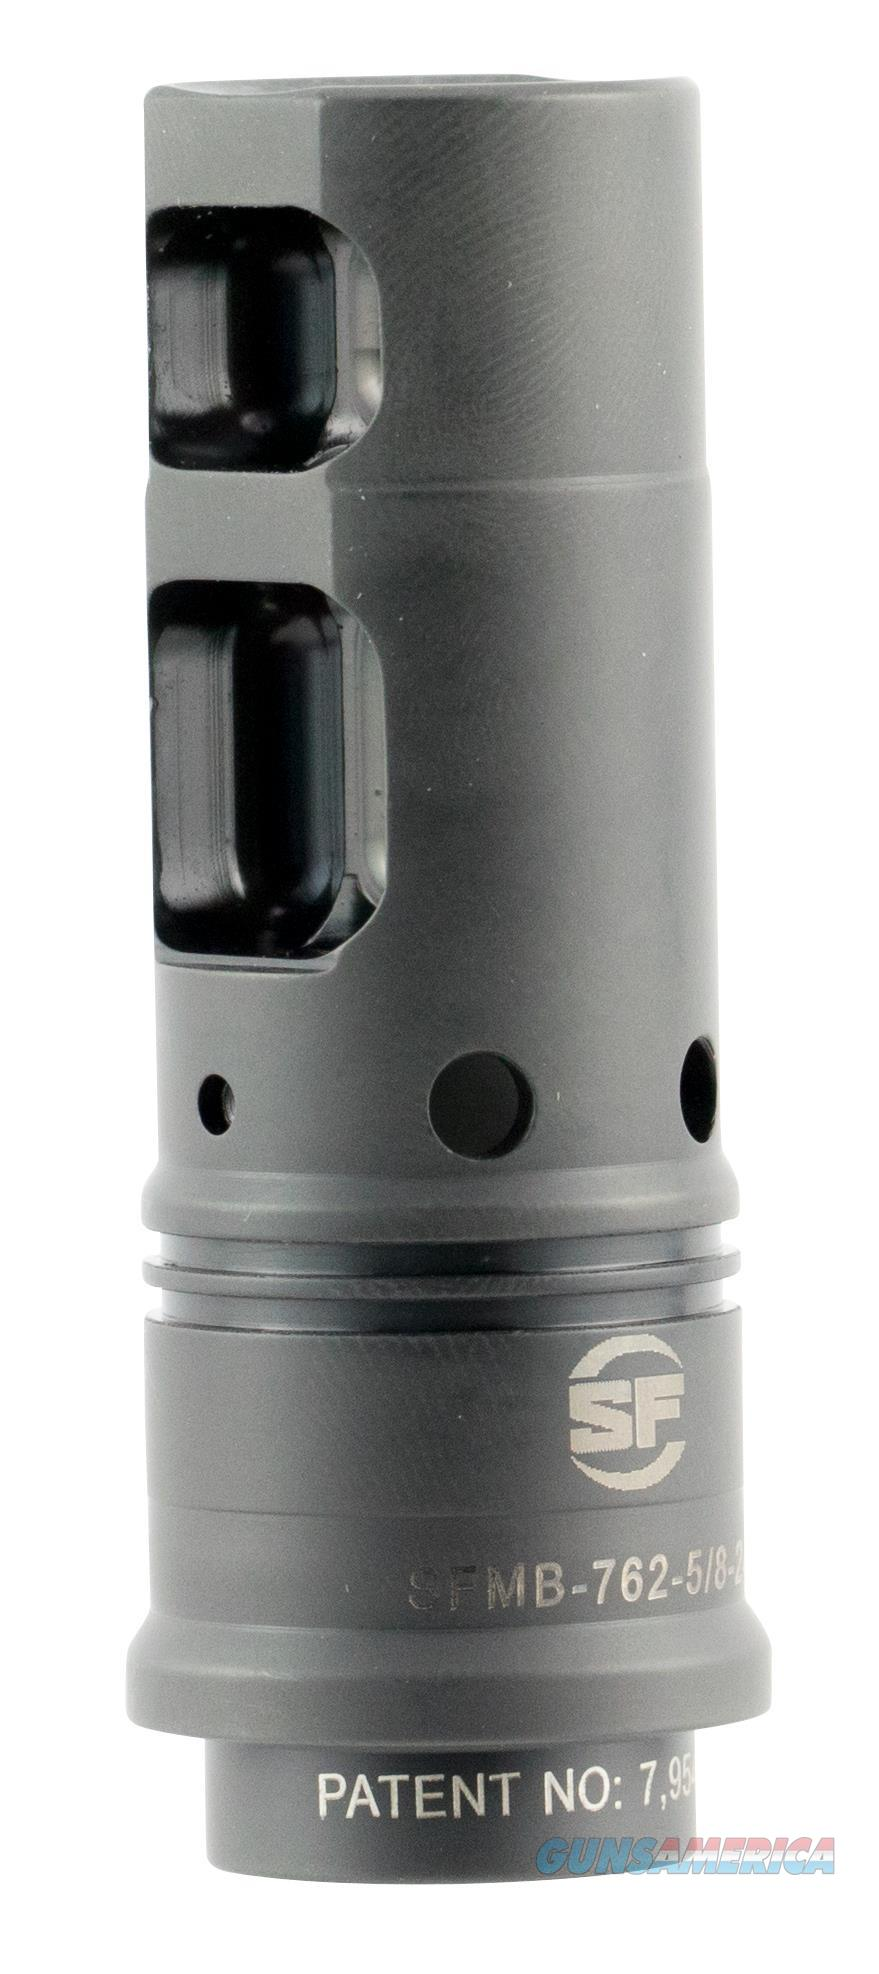 "Surefire Sfmb762 Suppressor Adapter Muzzle Brake Ar-10 7.62X51mm Stainless Steel 2.6"" SFMB762  Non-Guns > Gun Parts > Misc > Rifles"